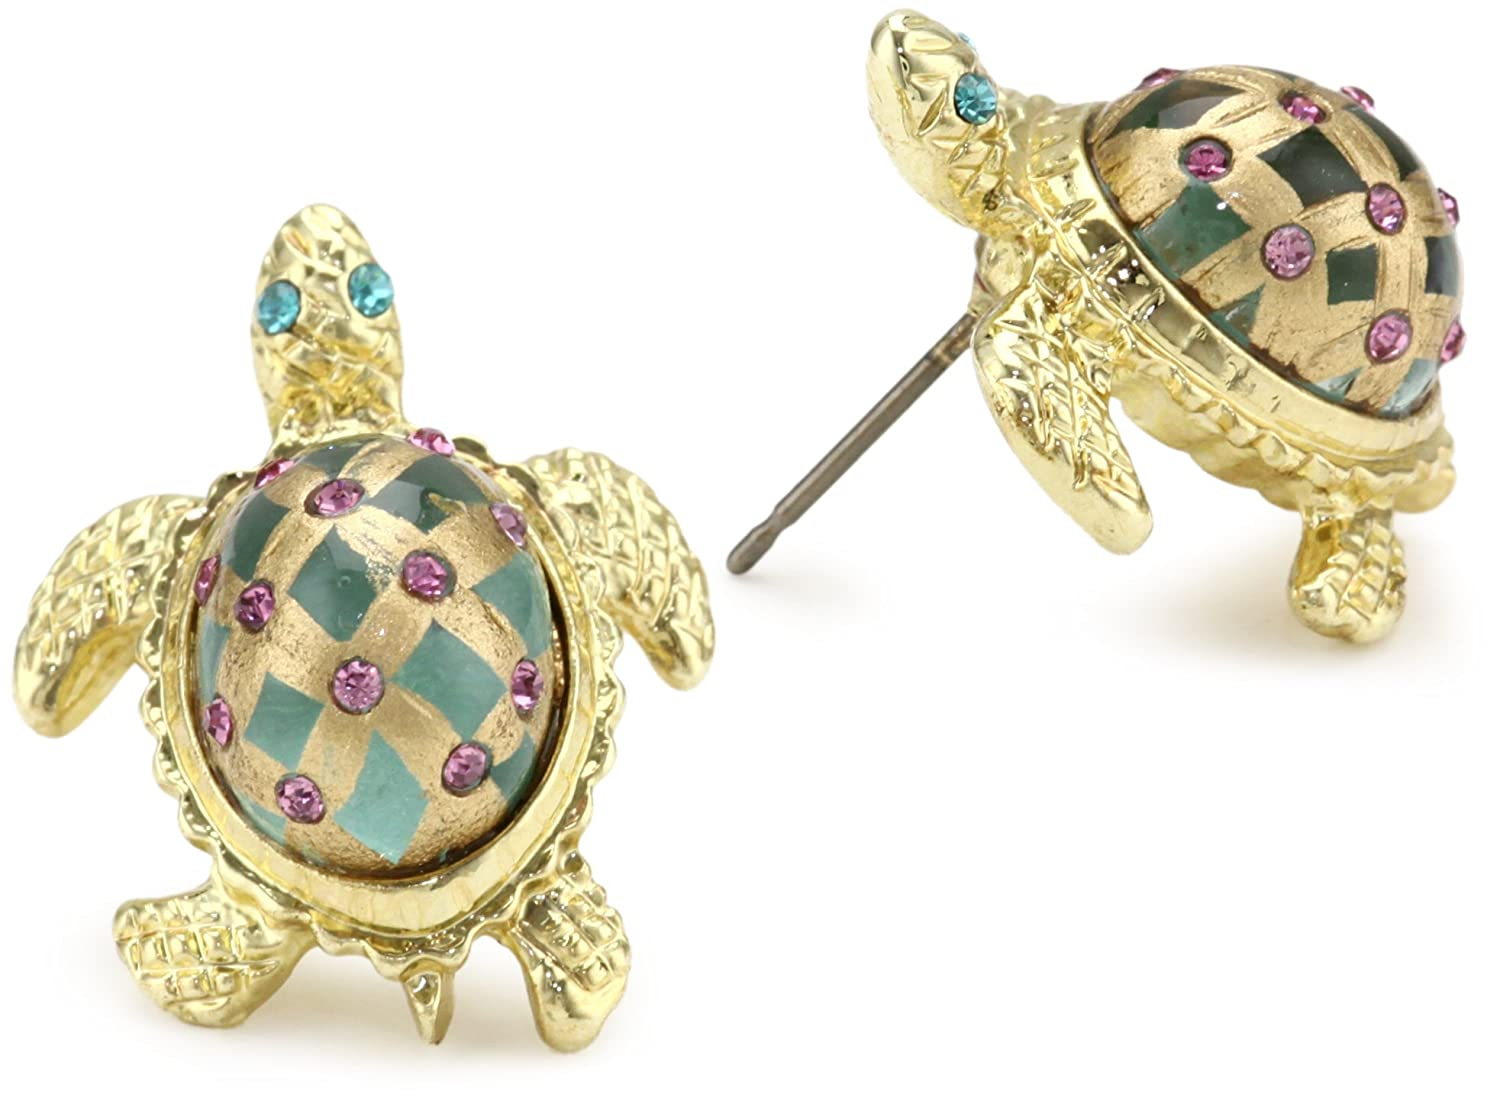 ce this endearing silver siam j the earrings will zirconia crafted exquisite wht details with embellished flair sea adorable set and mini add stud turtle cubic of artisan products